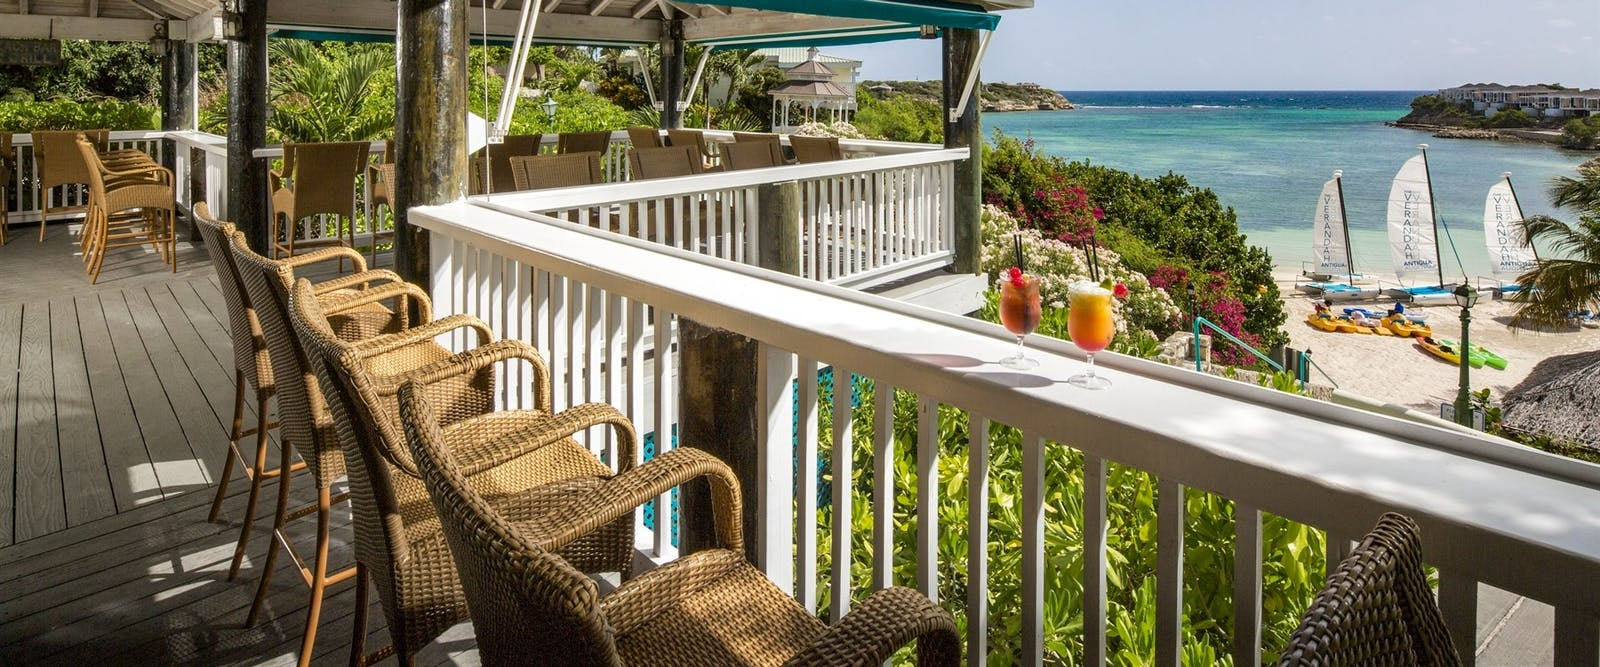 Bar Overlooking The Beach at The Verandah Resort & Spa, Antigua